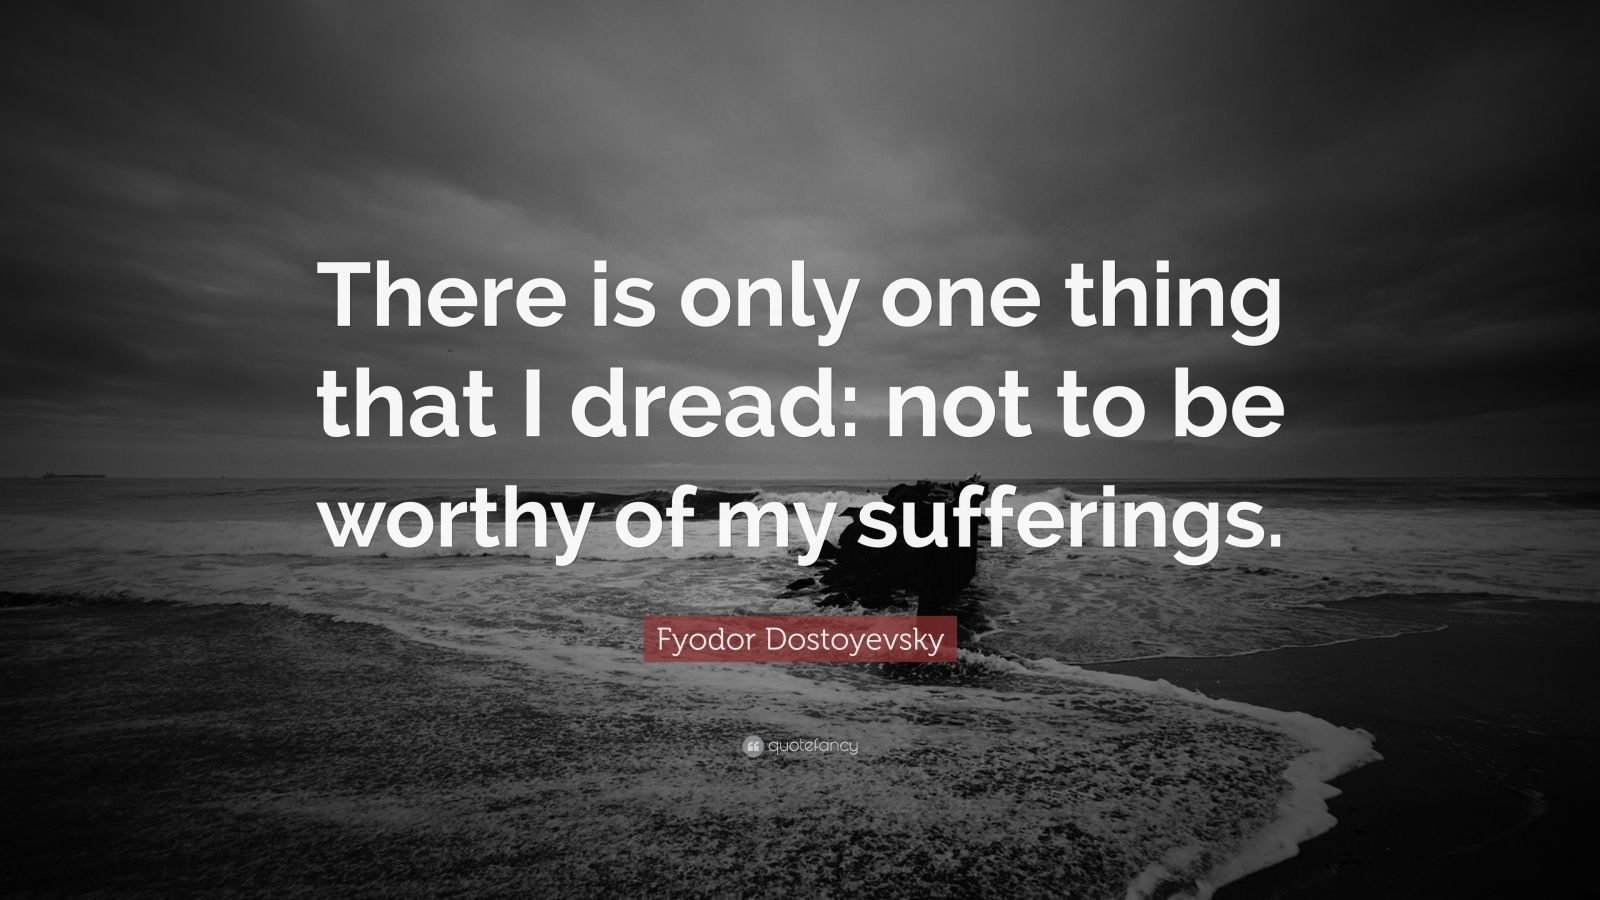 """Fyodor Dostoyevsky Quote: """"There is only one thing that I dread: not to be worthy of my sufferings."""""""